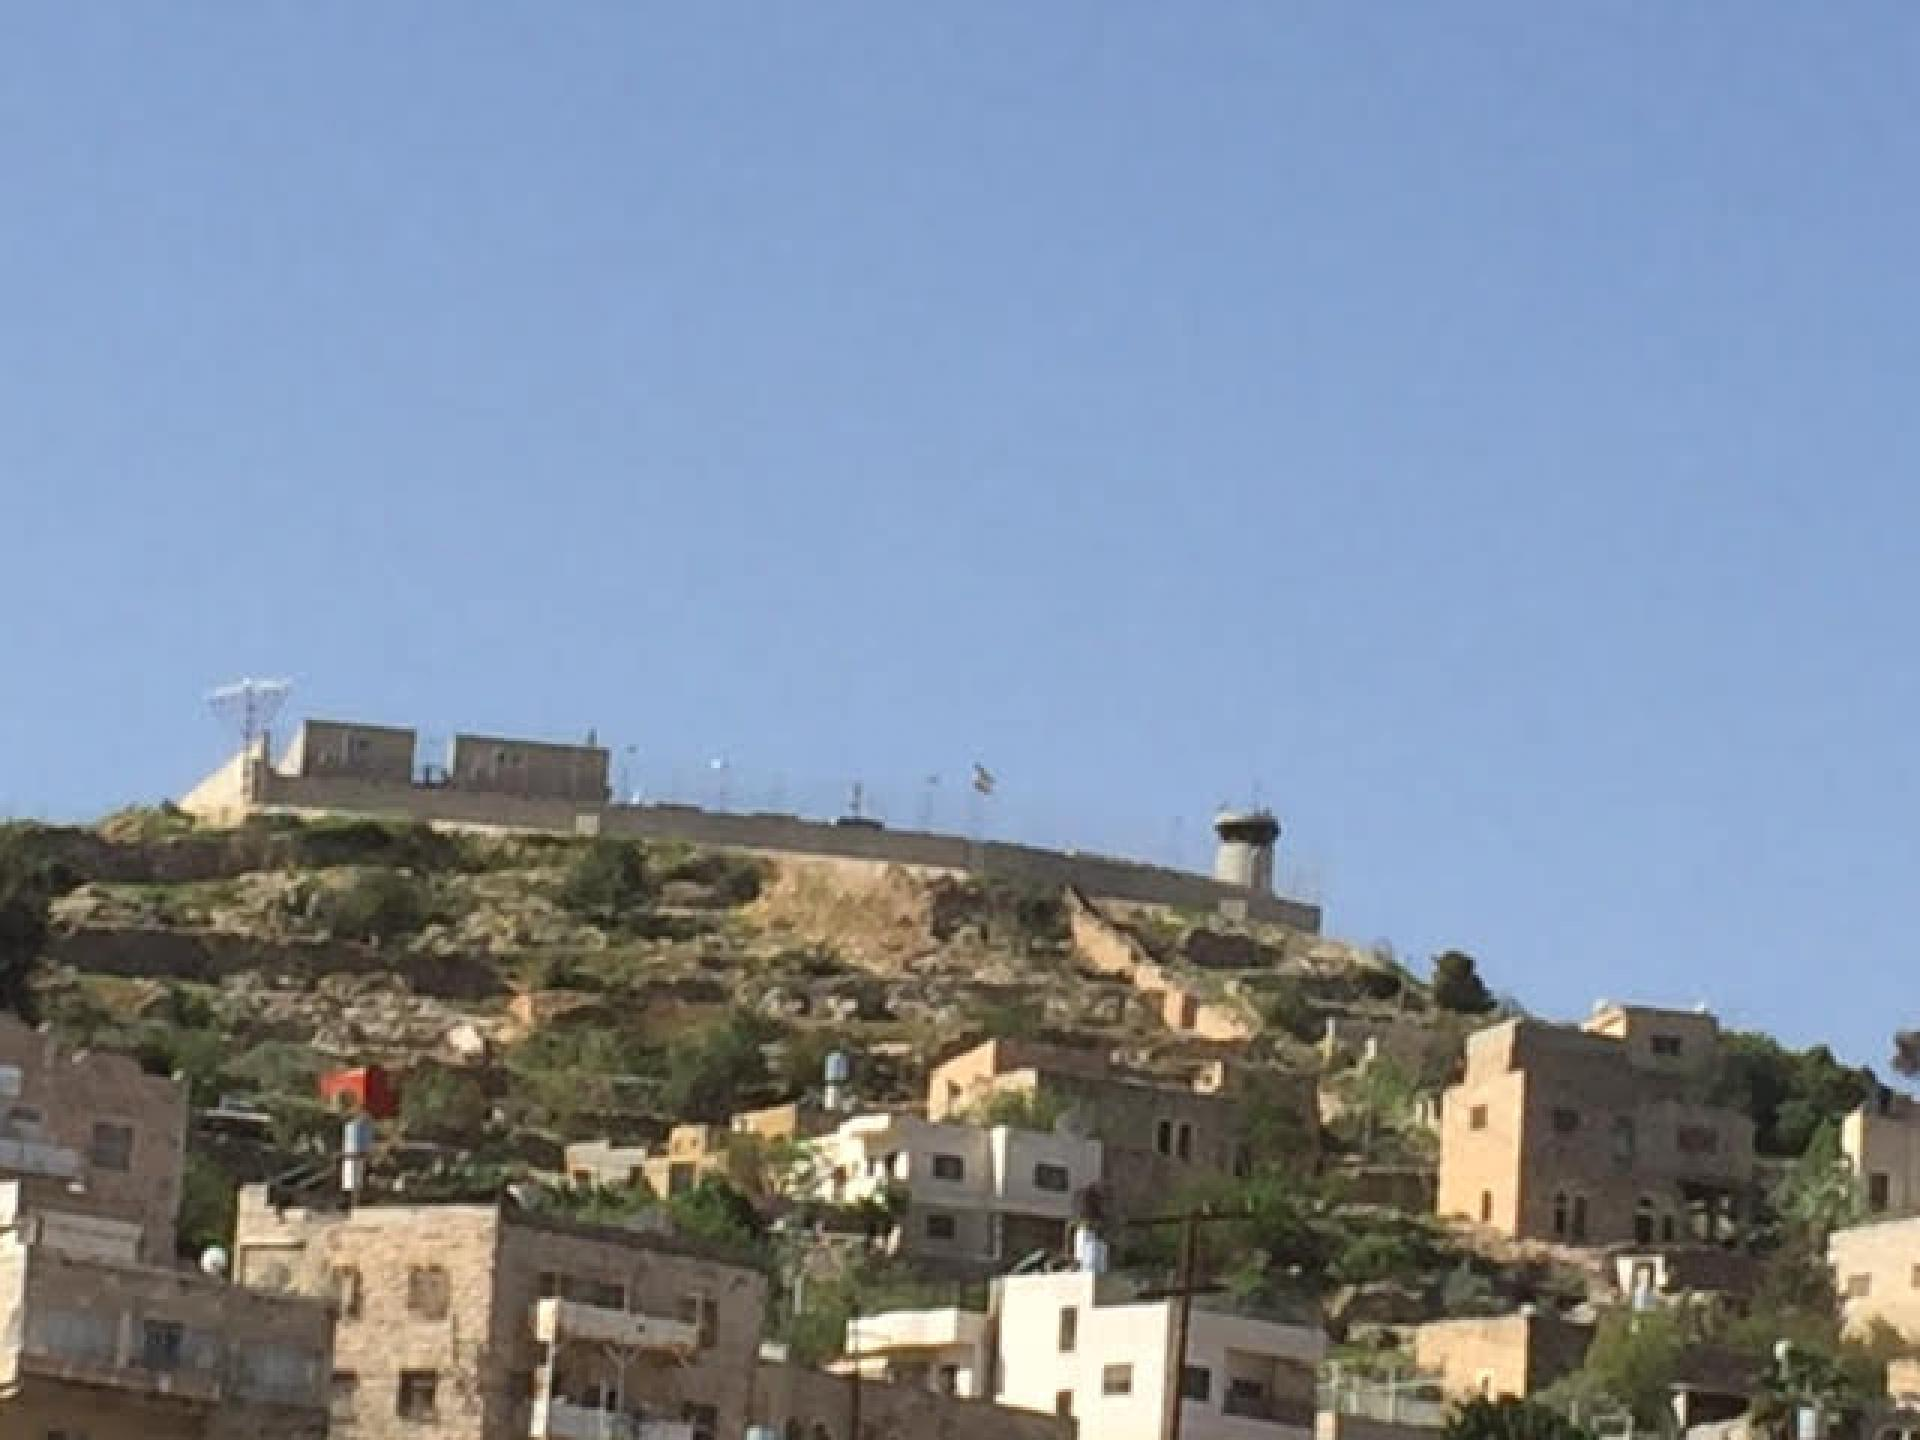 The pillbox above the Abu Snan neighborhood with the base built around it. Photographed from Gross Square